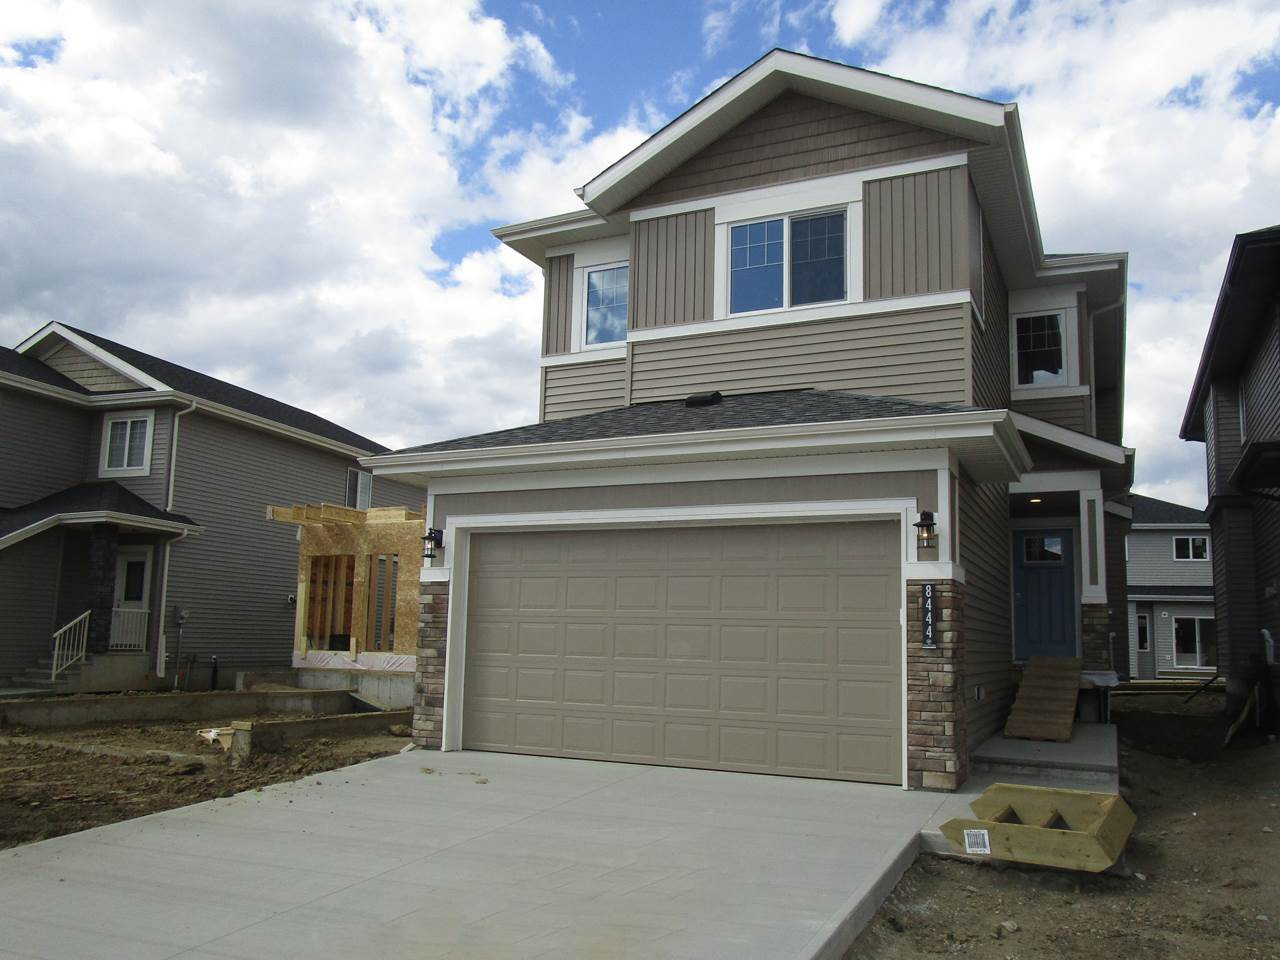 Showhome quality in Creekwood Chappelle - Once of Edmonton's hottest new areas! Why should you make this home yours? (1) HIGH END FINISHES - hardwood/tile/quartz/custom finishings/large windows/9 foot ceilings to name a few (2) ATTENTION TO DETAIL - Mill Street Homes is known for quality in every step of the building process (3) LAYOUT - This home is super functional & doesn't waste a square foot! (4) KITCHEN - Tons of cabinetry, pot & pan drawers, eat up bar, walk-in pantry (5) NEIGHBORHOOD SCHOOL - Your kids can come home for lunch from Donald R Getty just two blocks away (6) BONUS ROOM - do you need an office or a toy room? This home has that option with the second floor loft area (7) BRIGHT & BEAUTIFUL - Tons of large windows make this home open & Airy (8) UPSTAIRS LAUNDRY - Includes storage & cabinetry! (9) INCLUDED DECK - one less thing for you to do! (9) COMMUNITY - a fantastic community building, hockey rink, active community league with lots of events for the family, and more! Don't miss it!